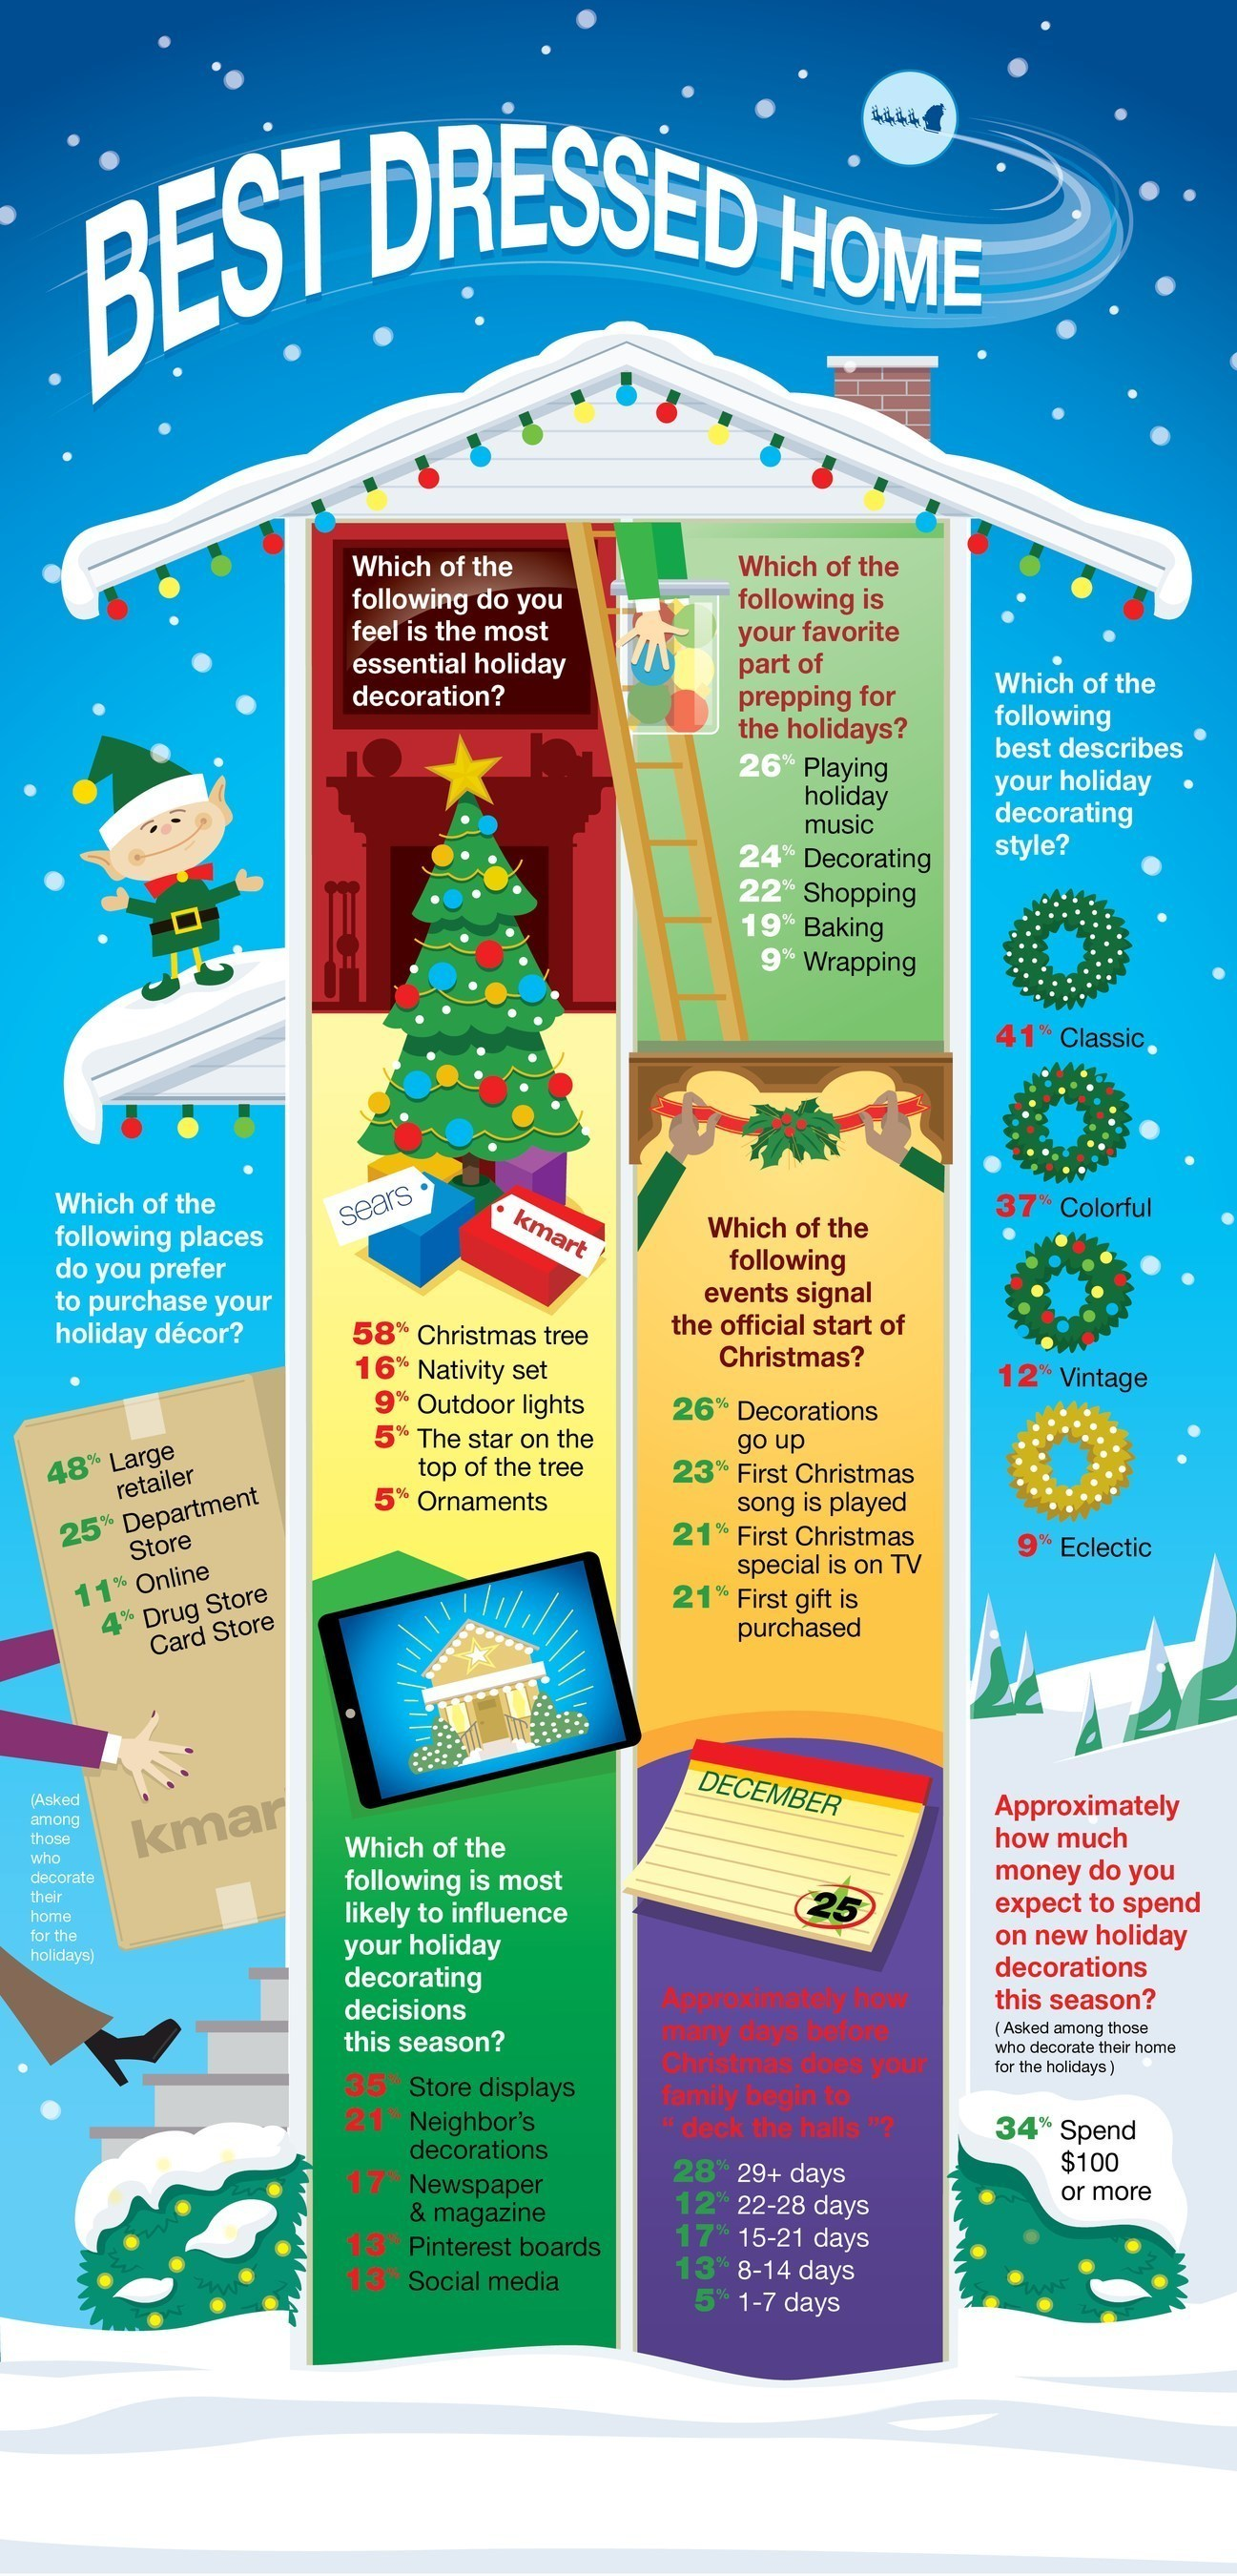 Kmart And Sears Survey Reveals Seasonal Decorating Trends